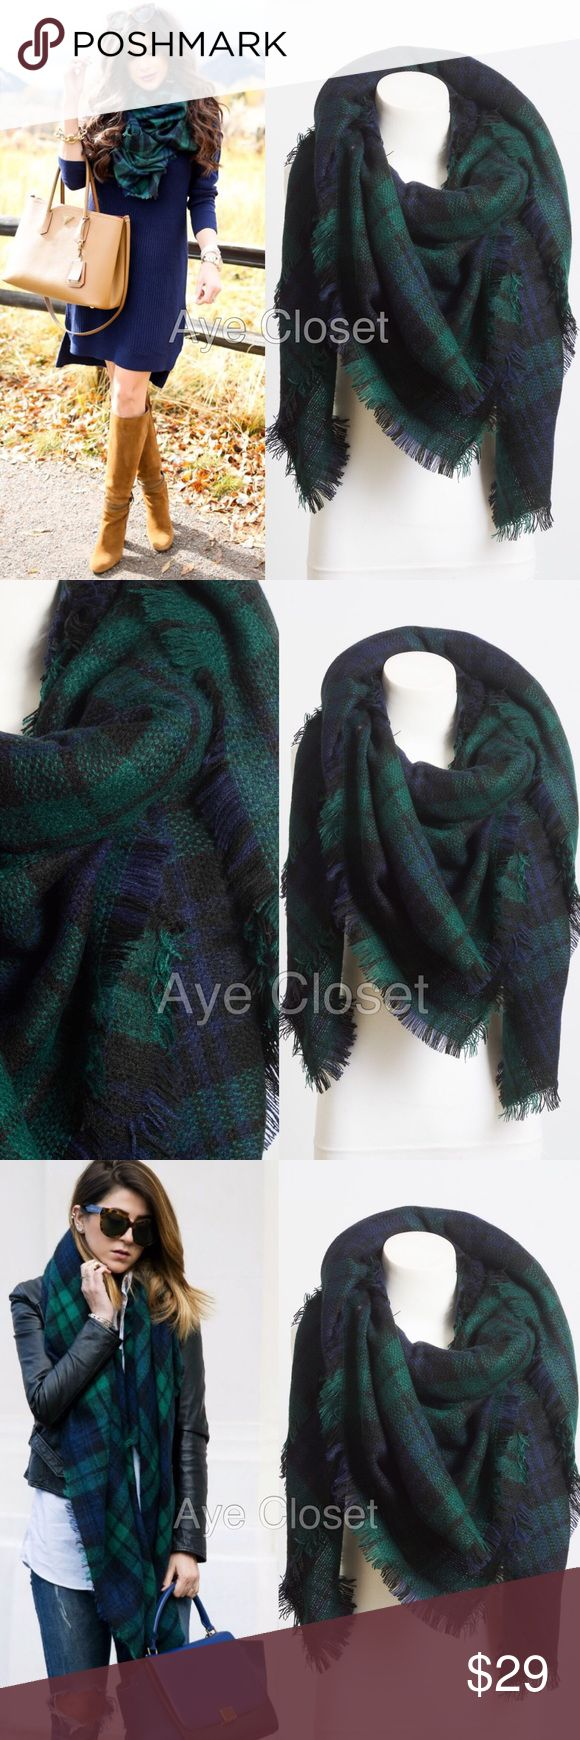 "New tartan blanket plaid scarf wrap shawl checked New Tartan Blanket Plaid scarf wrap shawl checked  Brand New without tags. Retail item. Soft, cozy and warm. Tartan Blanket Plaid scarf wrap shawl checked. Very stunning and classic. So many ways to wear it. Material : 100% Acrylic. Measurement : 60""x 55"" navy blue green combo Boutique Accessories Scarves & Wraps"